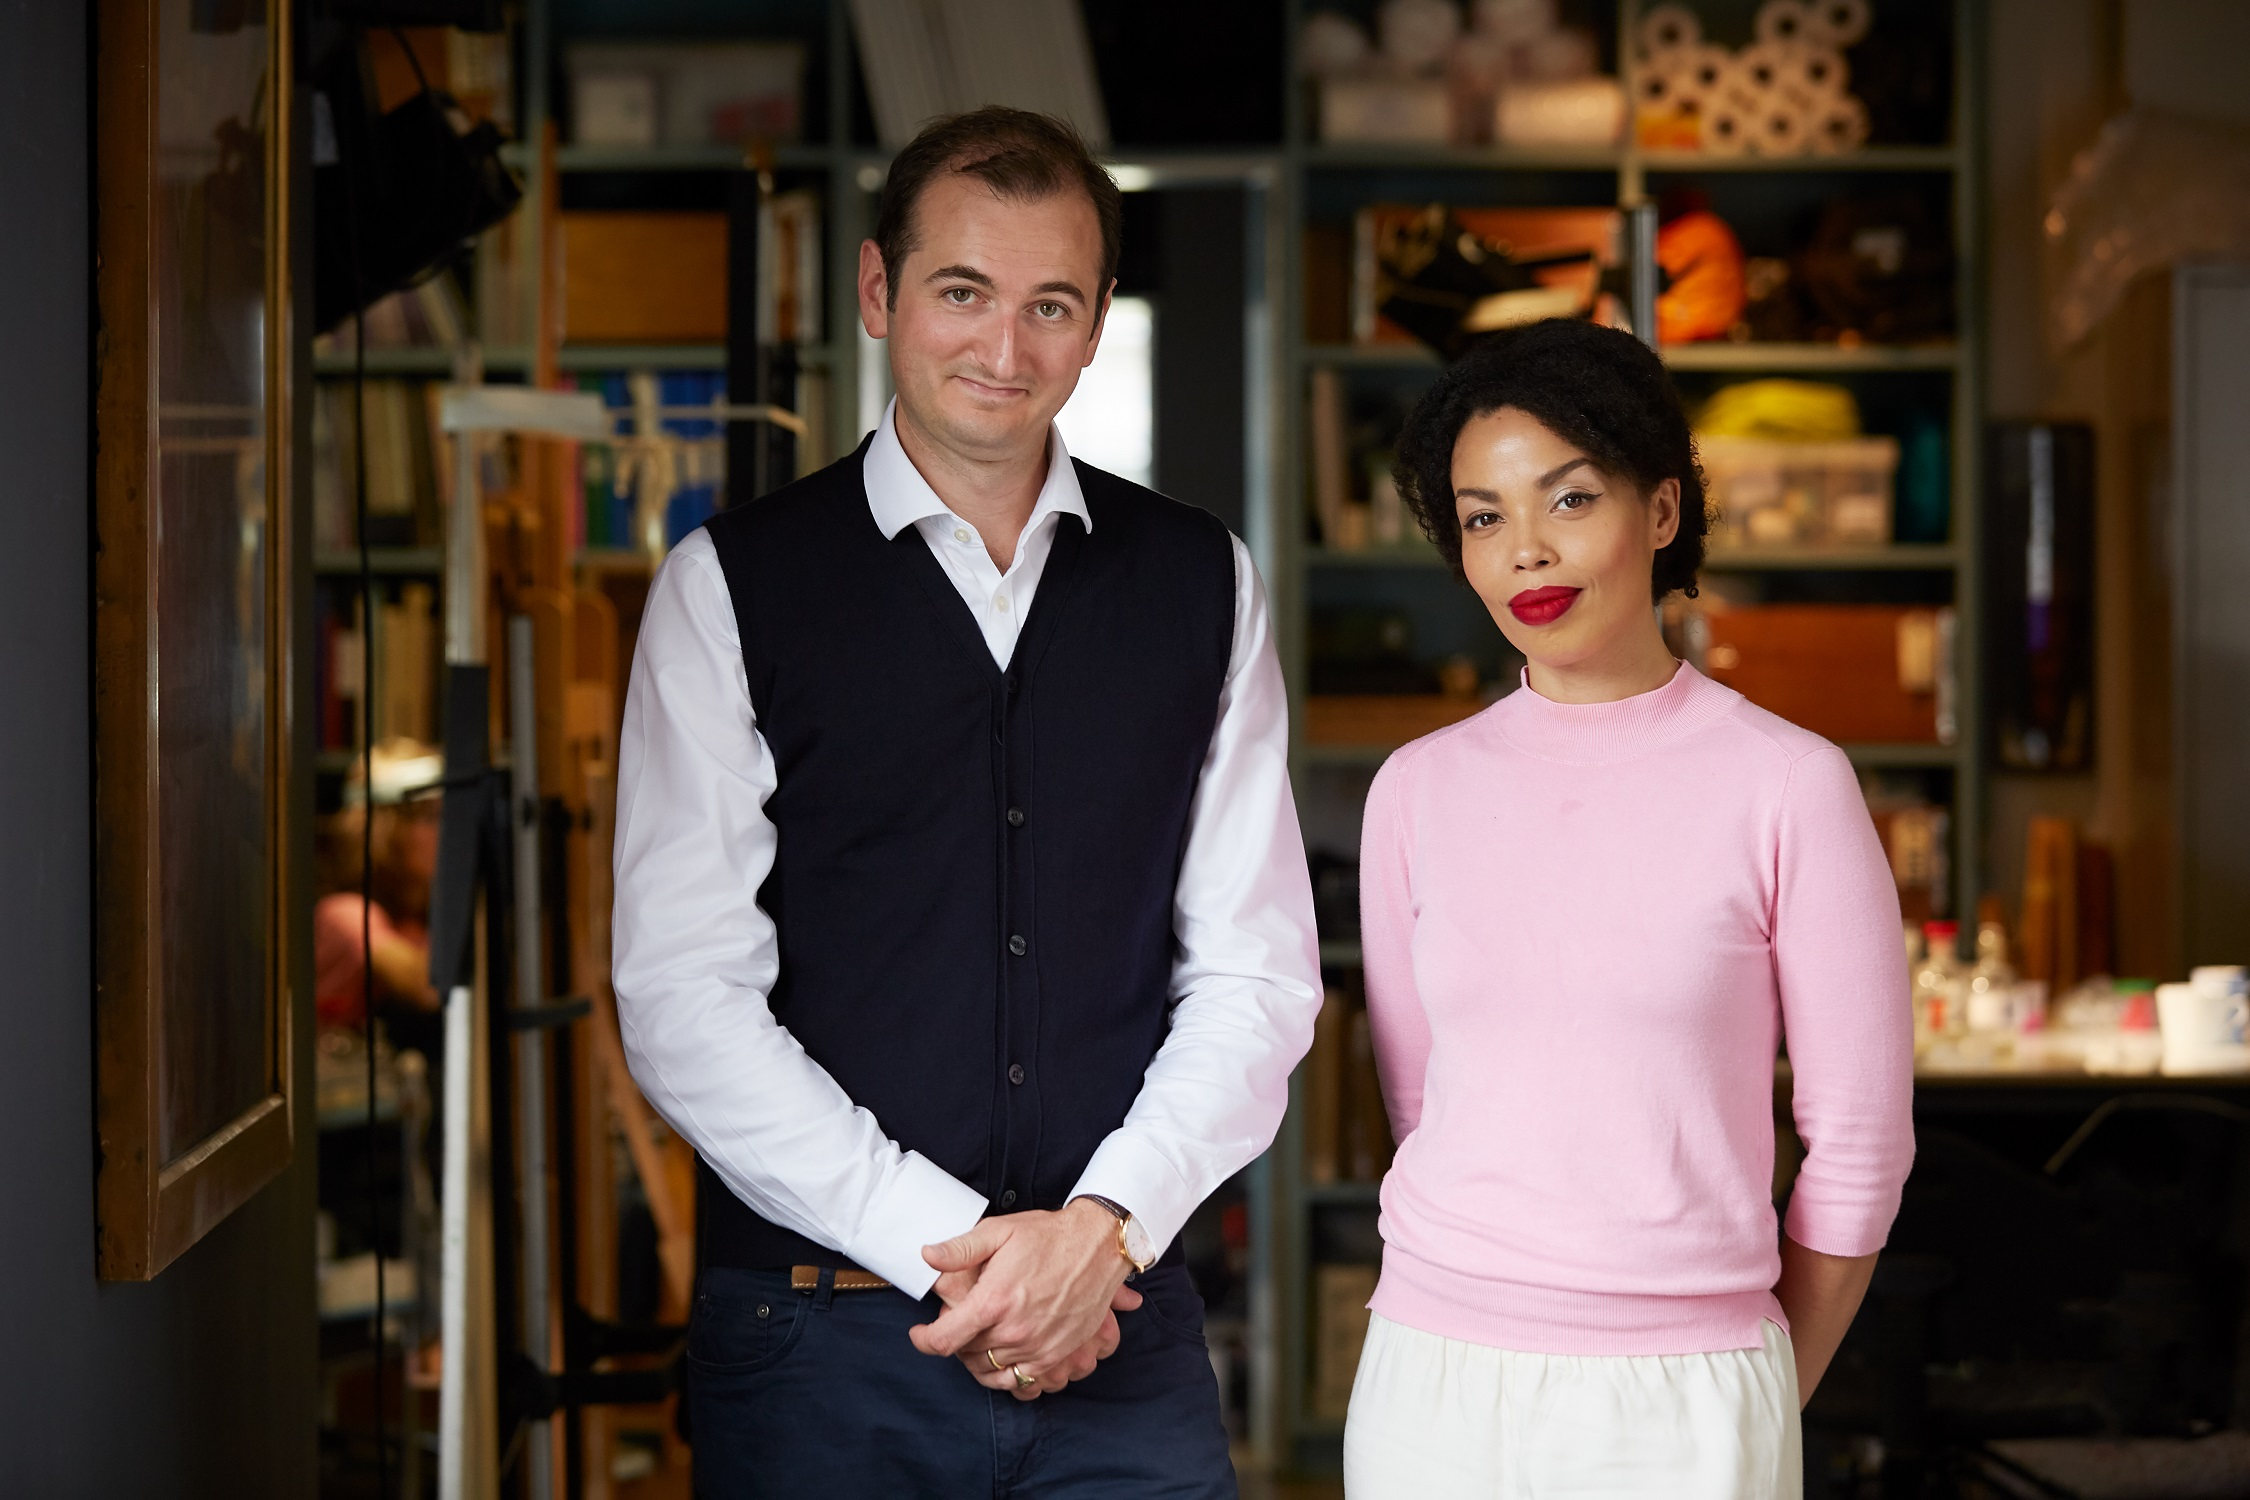 'Britain's Lost Masterpieces' presenters, Bendor Grosvenor and Emma Dabiri